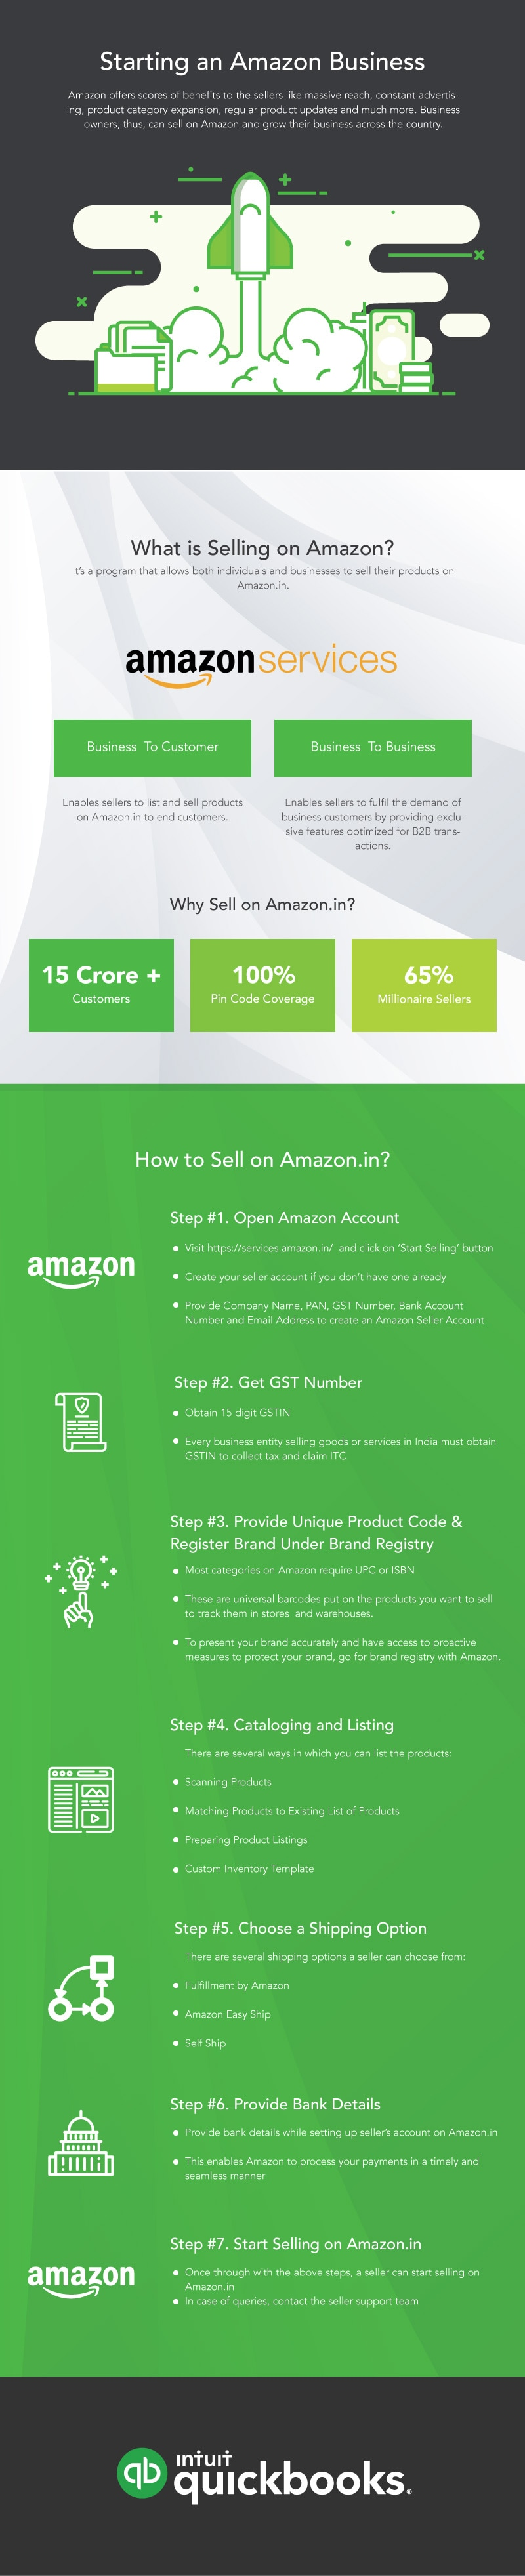 Starting An Amazon Business A Guide To Sell On Amazon Quickbooks